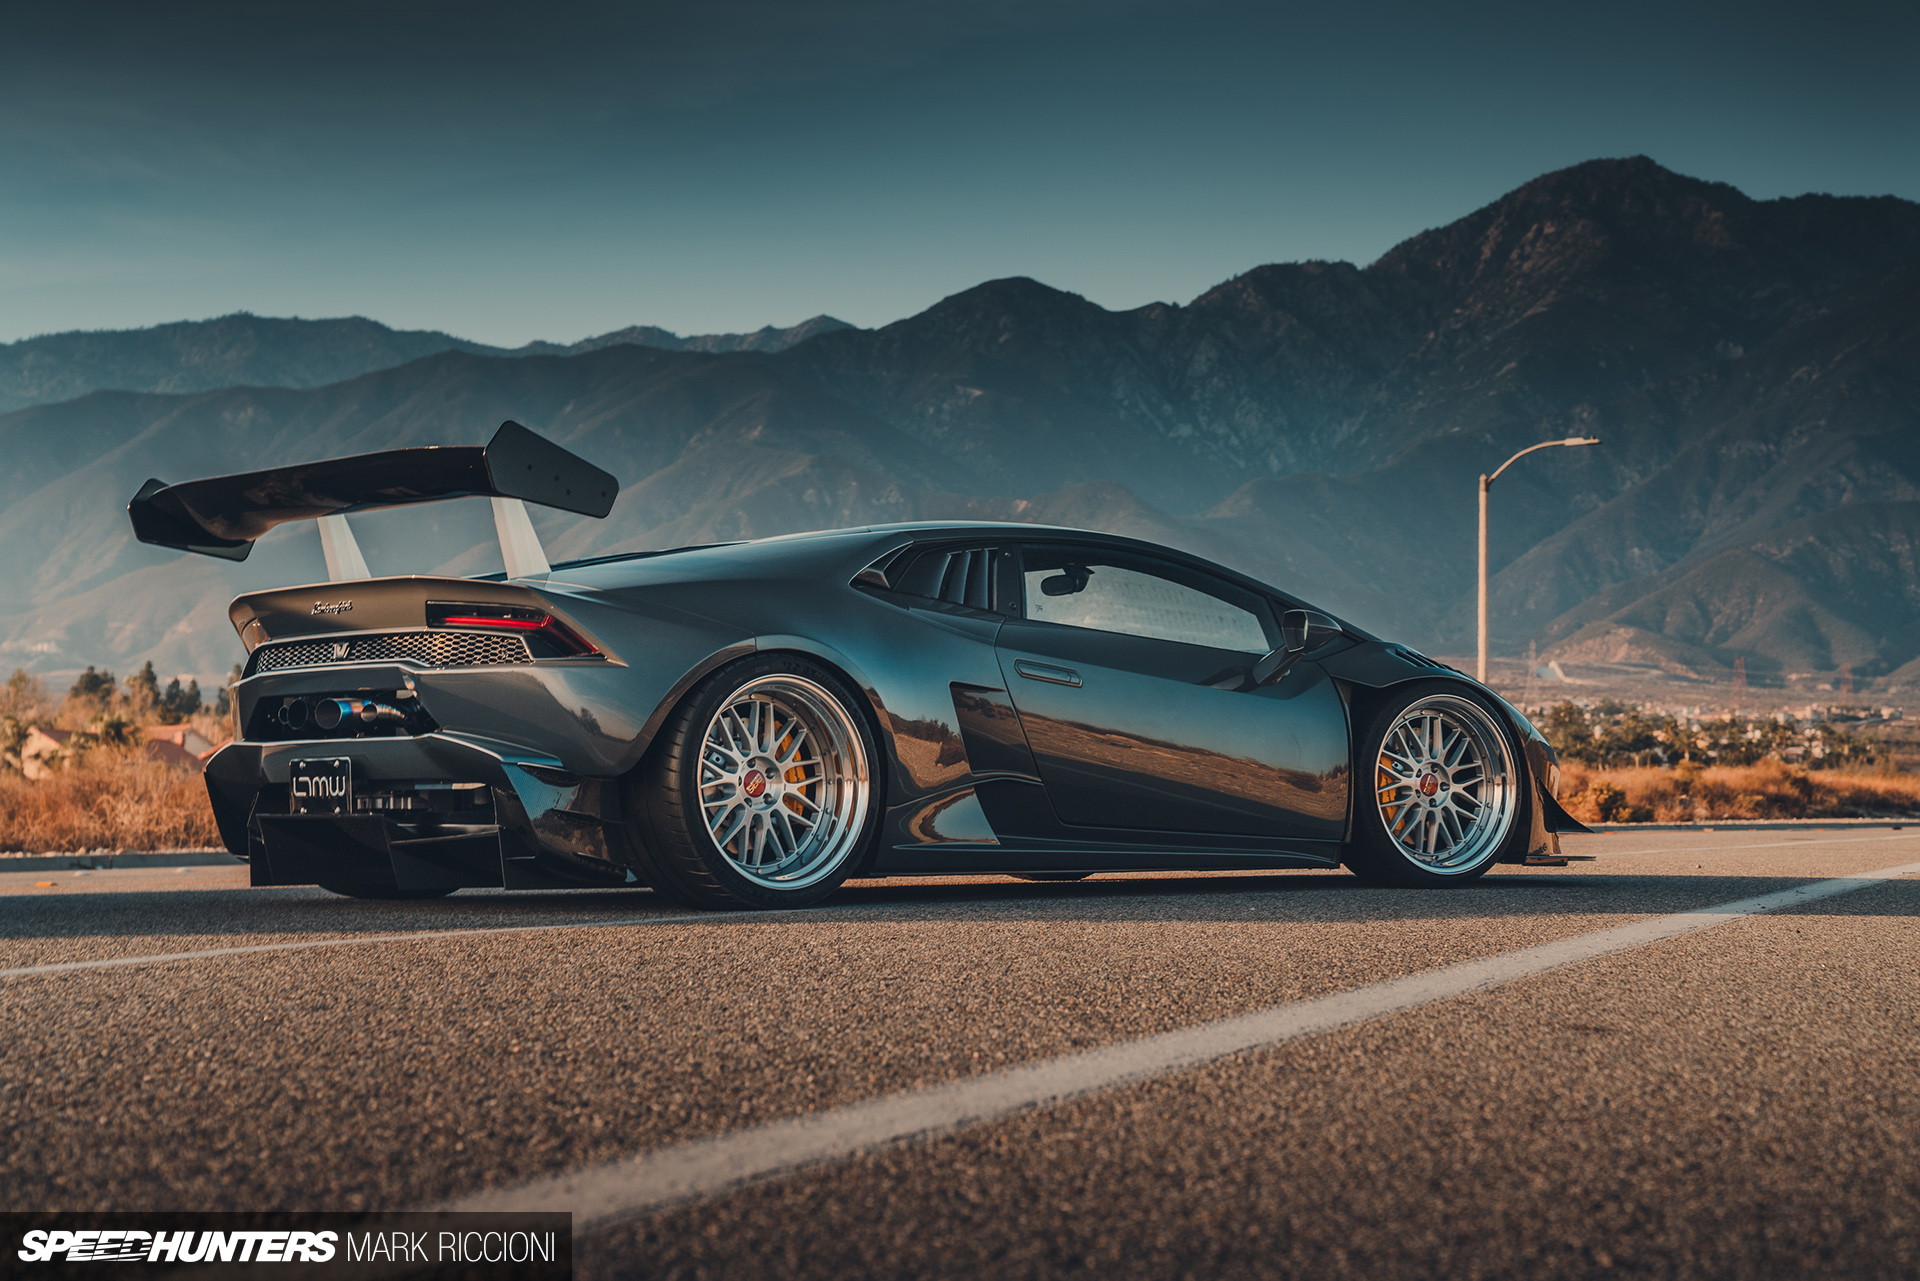 Chasing Extreme Dreams In A Twin Turbo Hurac 225 N Speedhunters